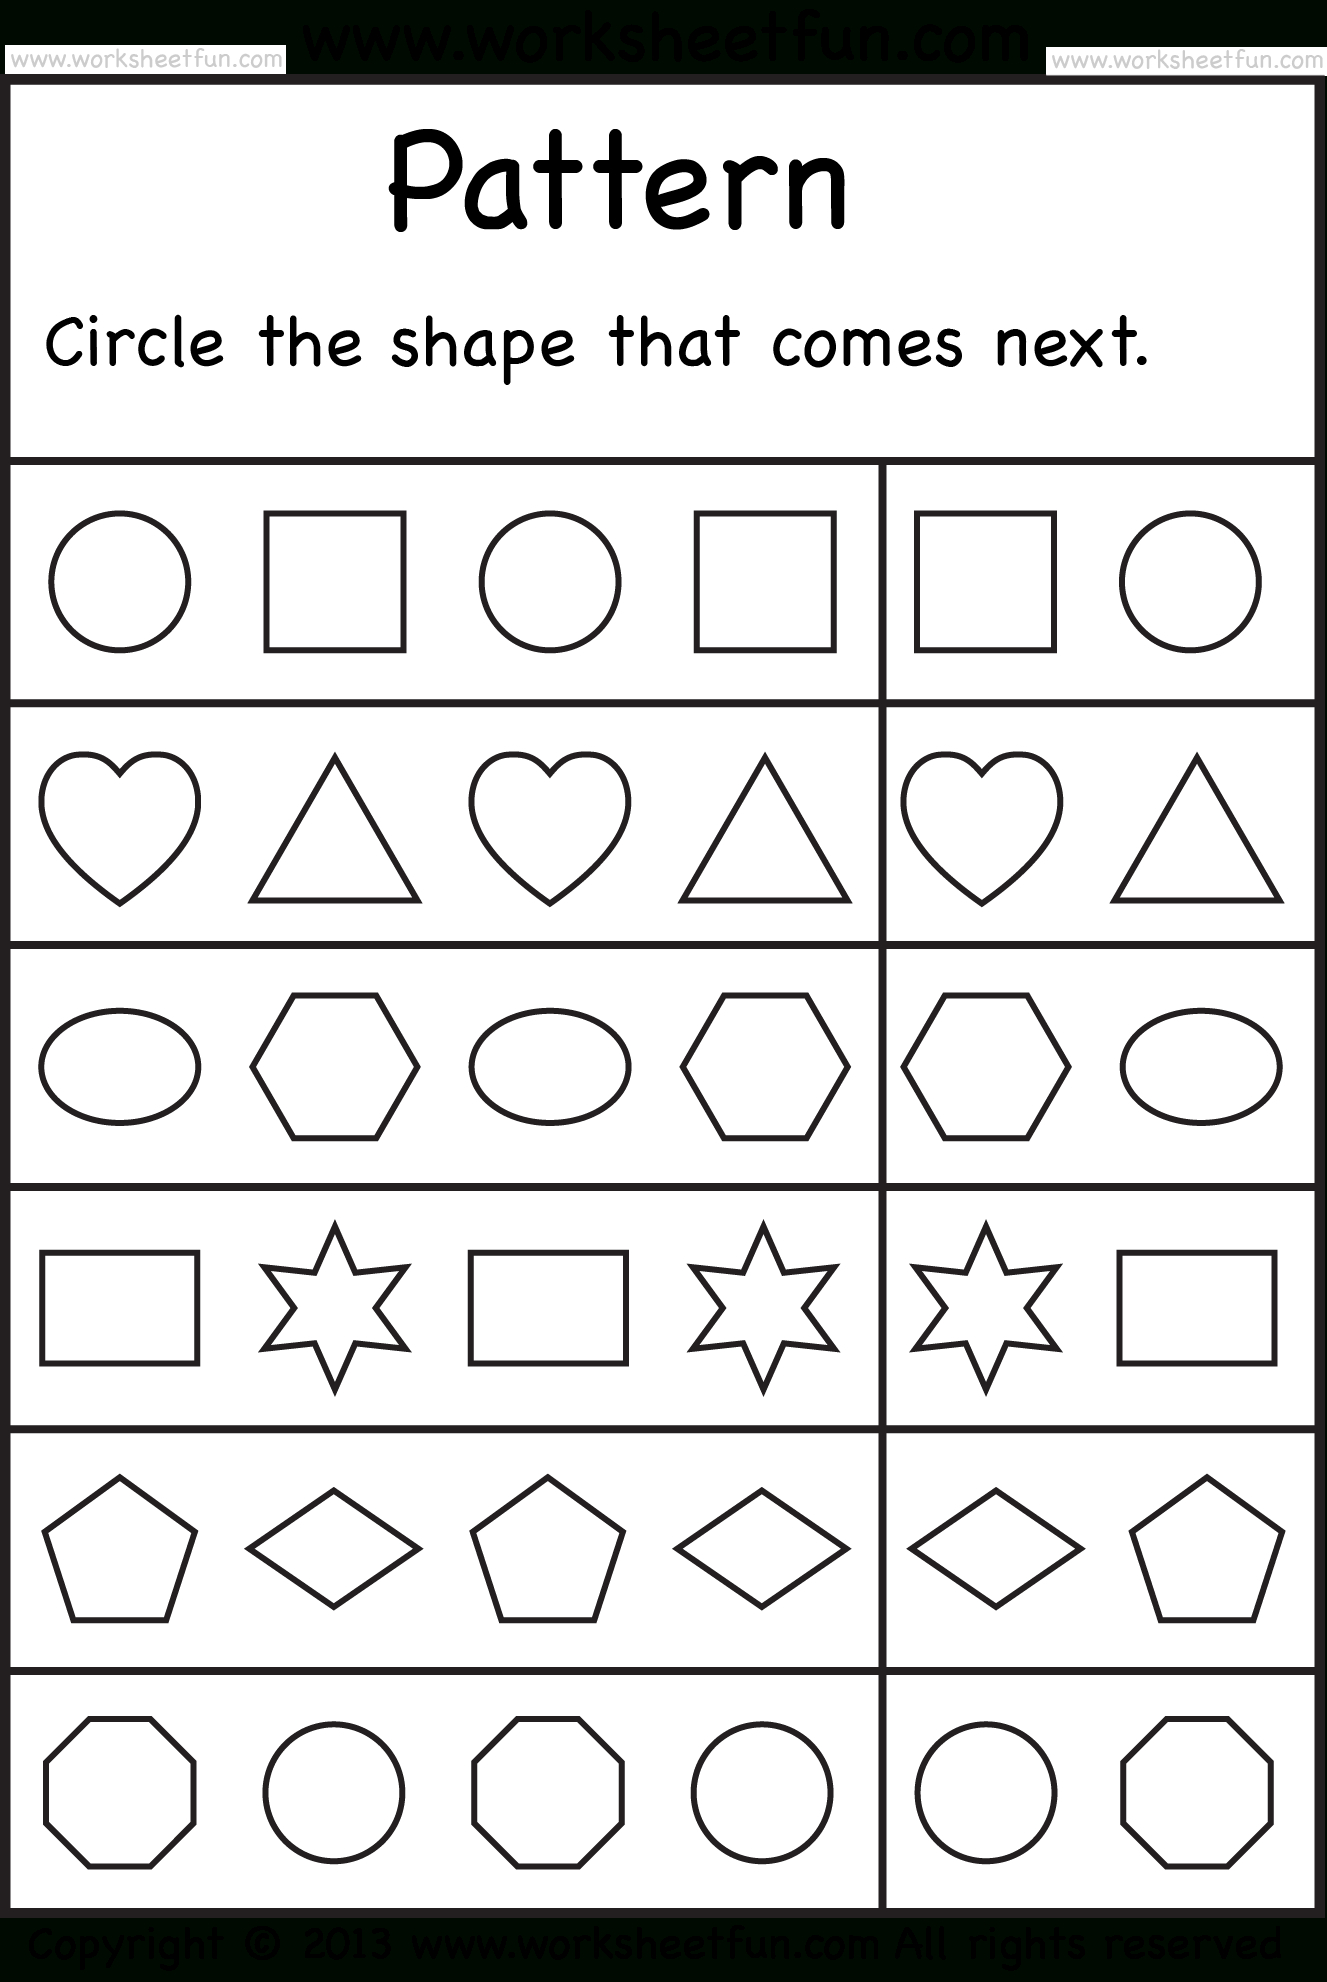 Free Printable Worksheets – Worksheetfun / Free Printable - Free Printable Pages For Preschoolers